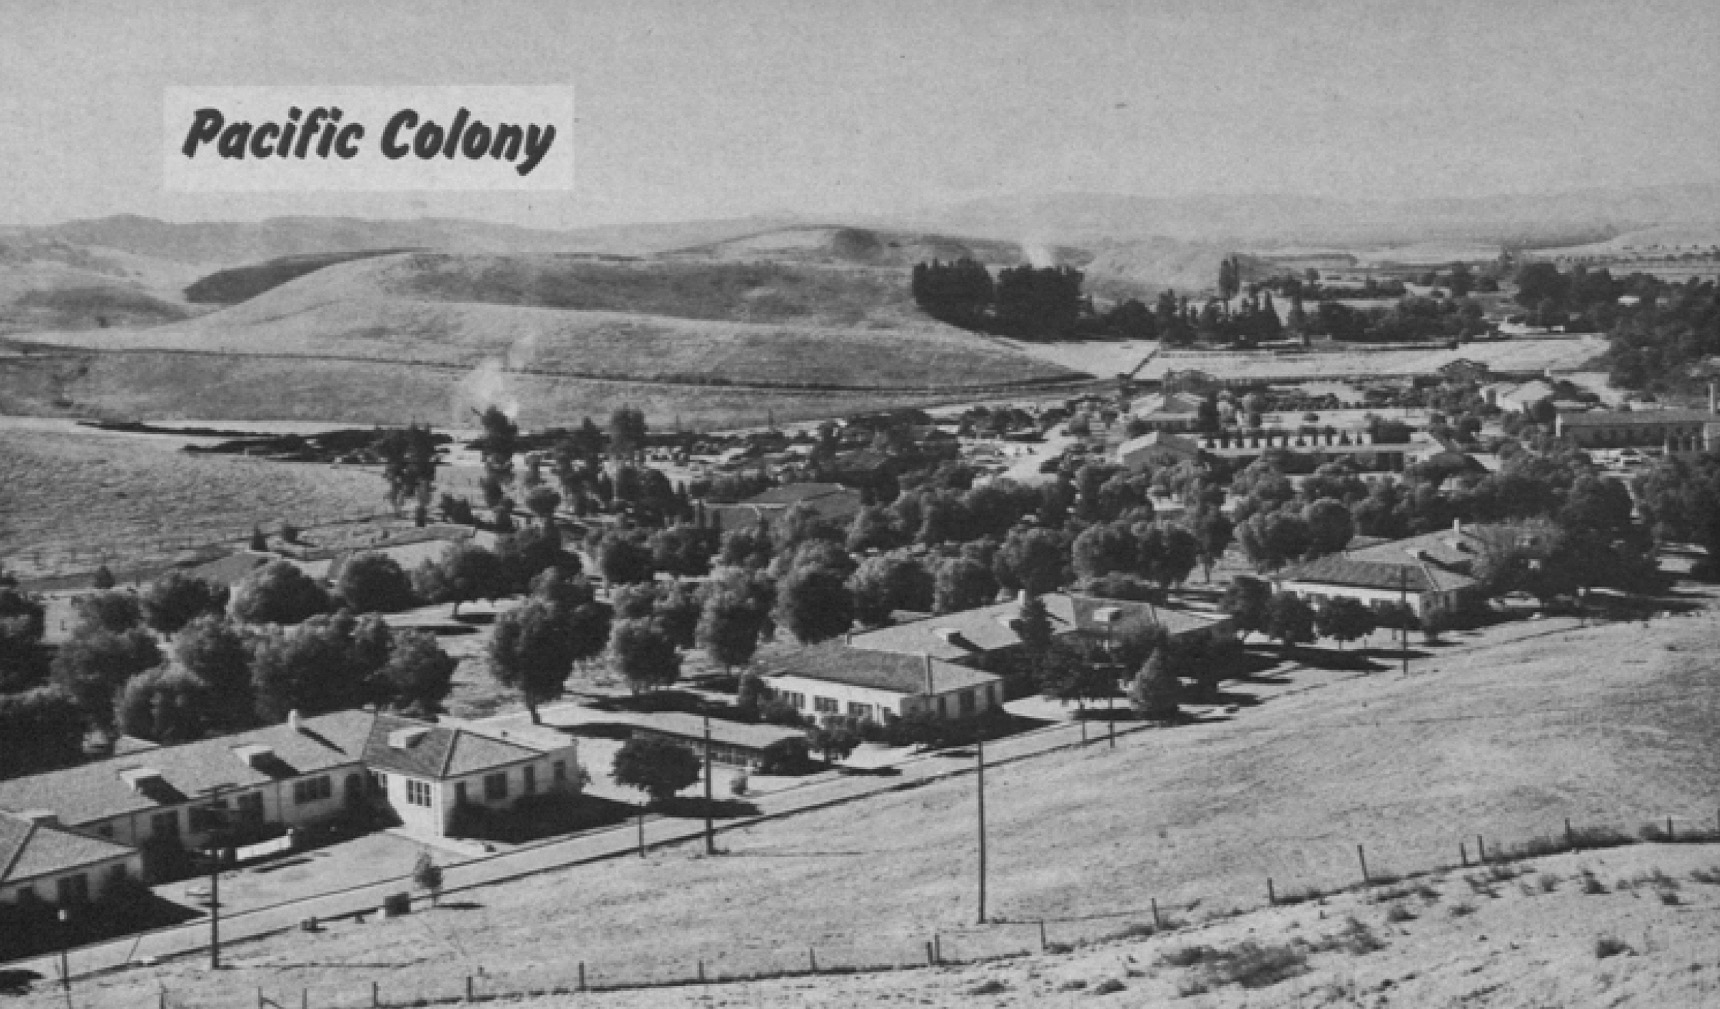 Pacific Colony, located at Spadra, California. Image published in the Biennial Report for 1950-1952 by State of California Department of Mental Hygiene and provided by Alex Wellerstein.